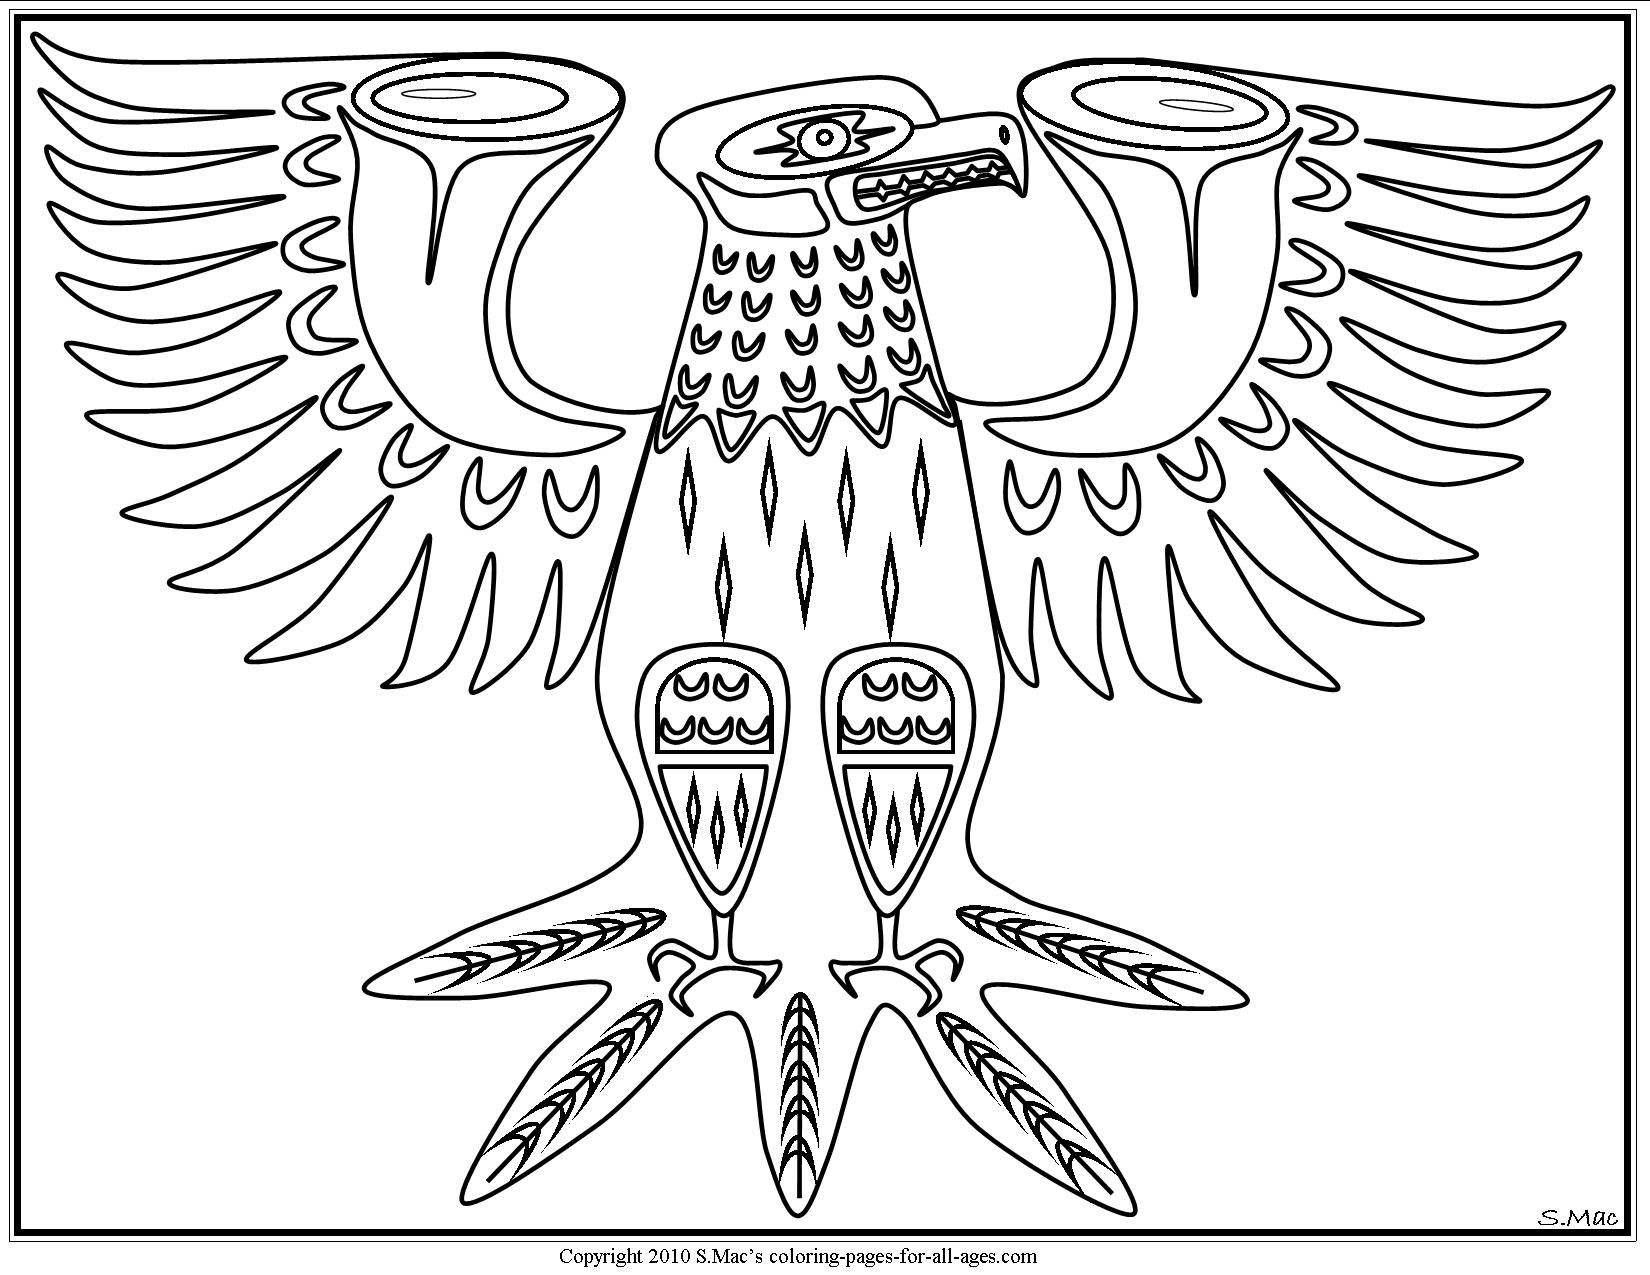 Pacific Northwest Native American Art Coloring Pages Native American Symbols Native American Art Native American Patterns